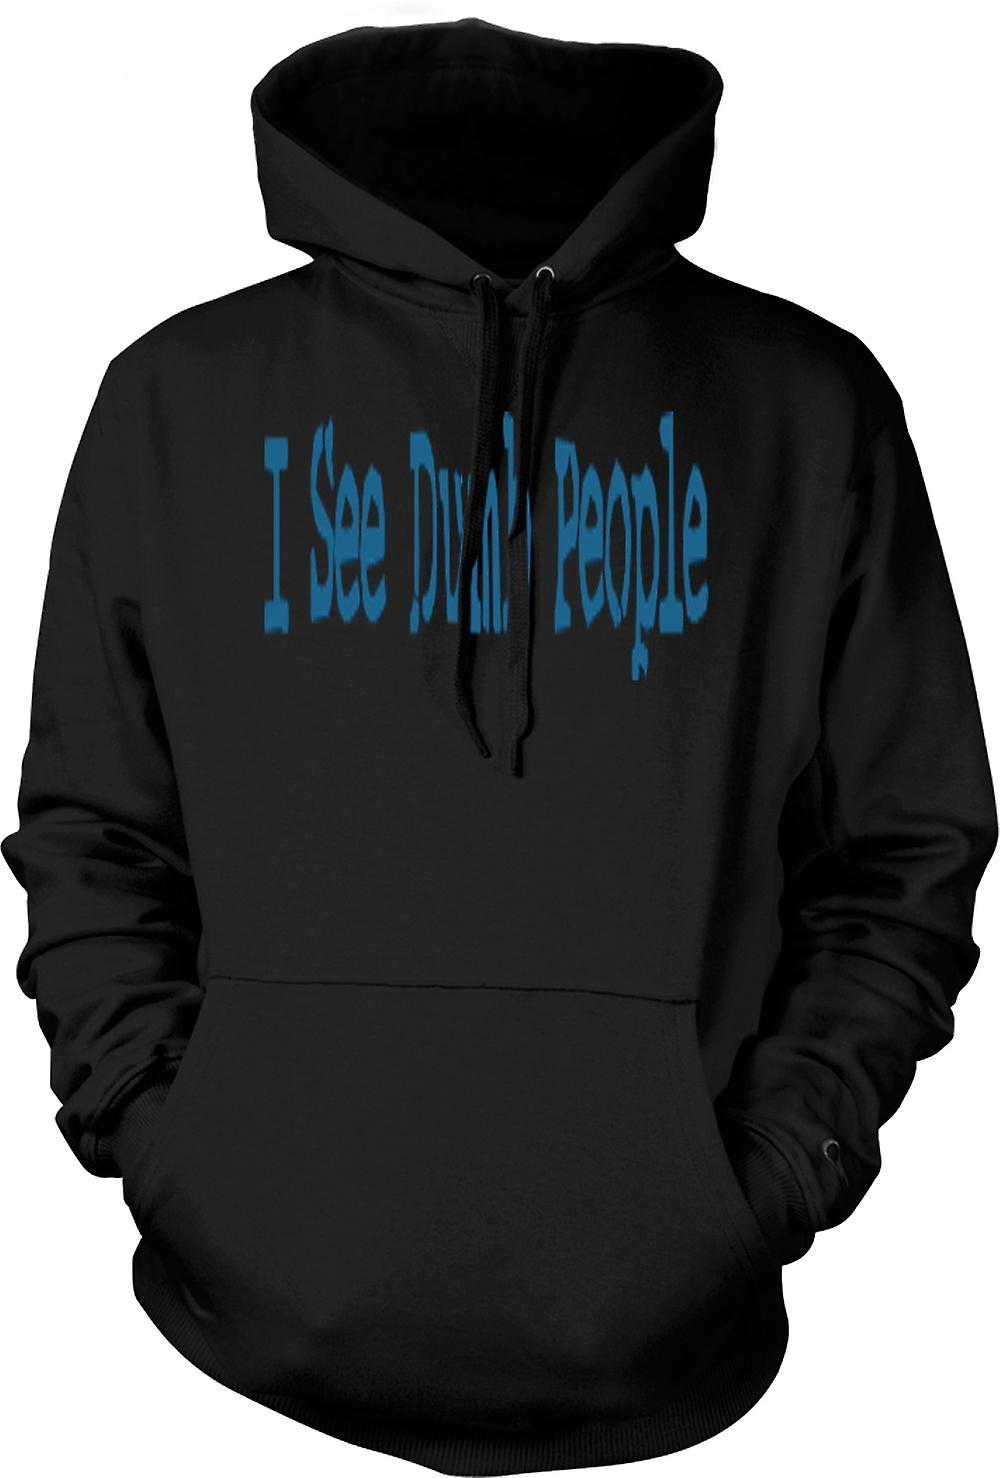 Kids Hoodie - I See Dumb People - Quote